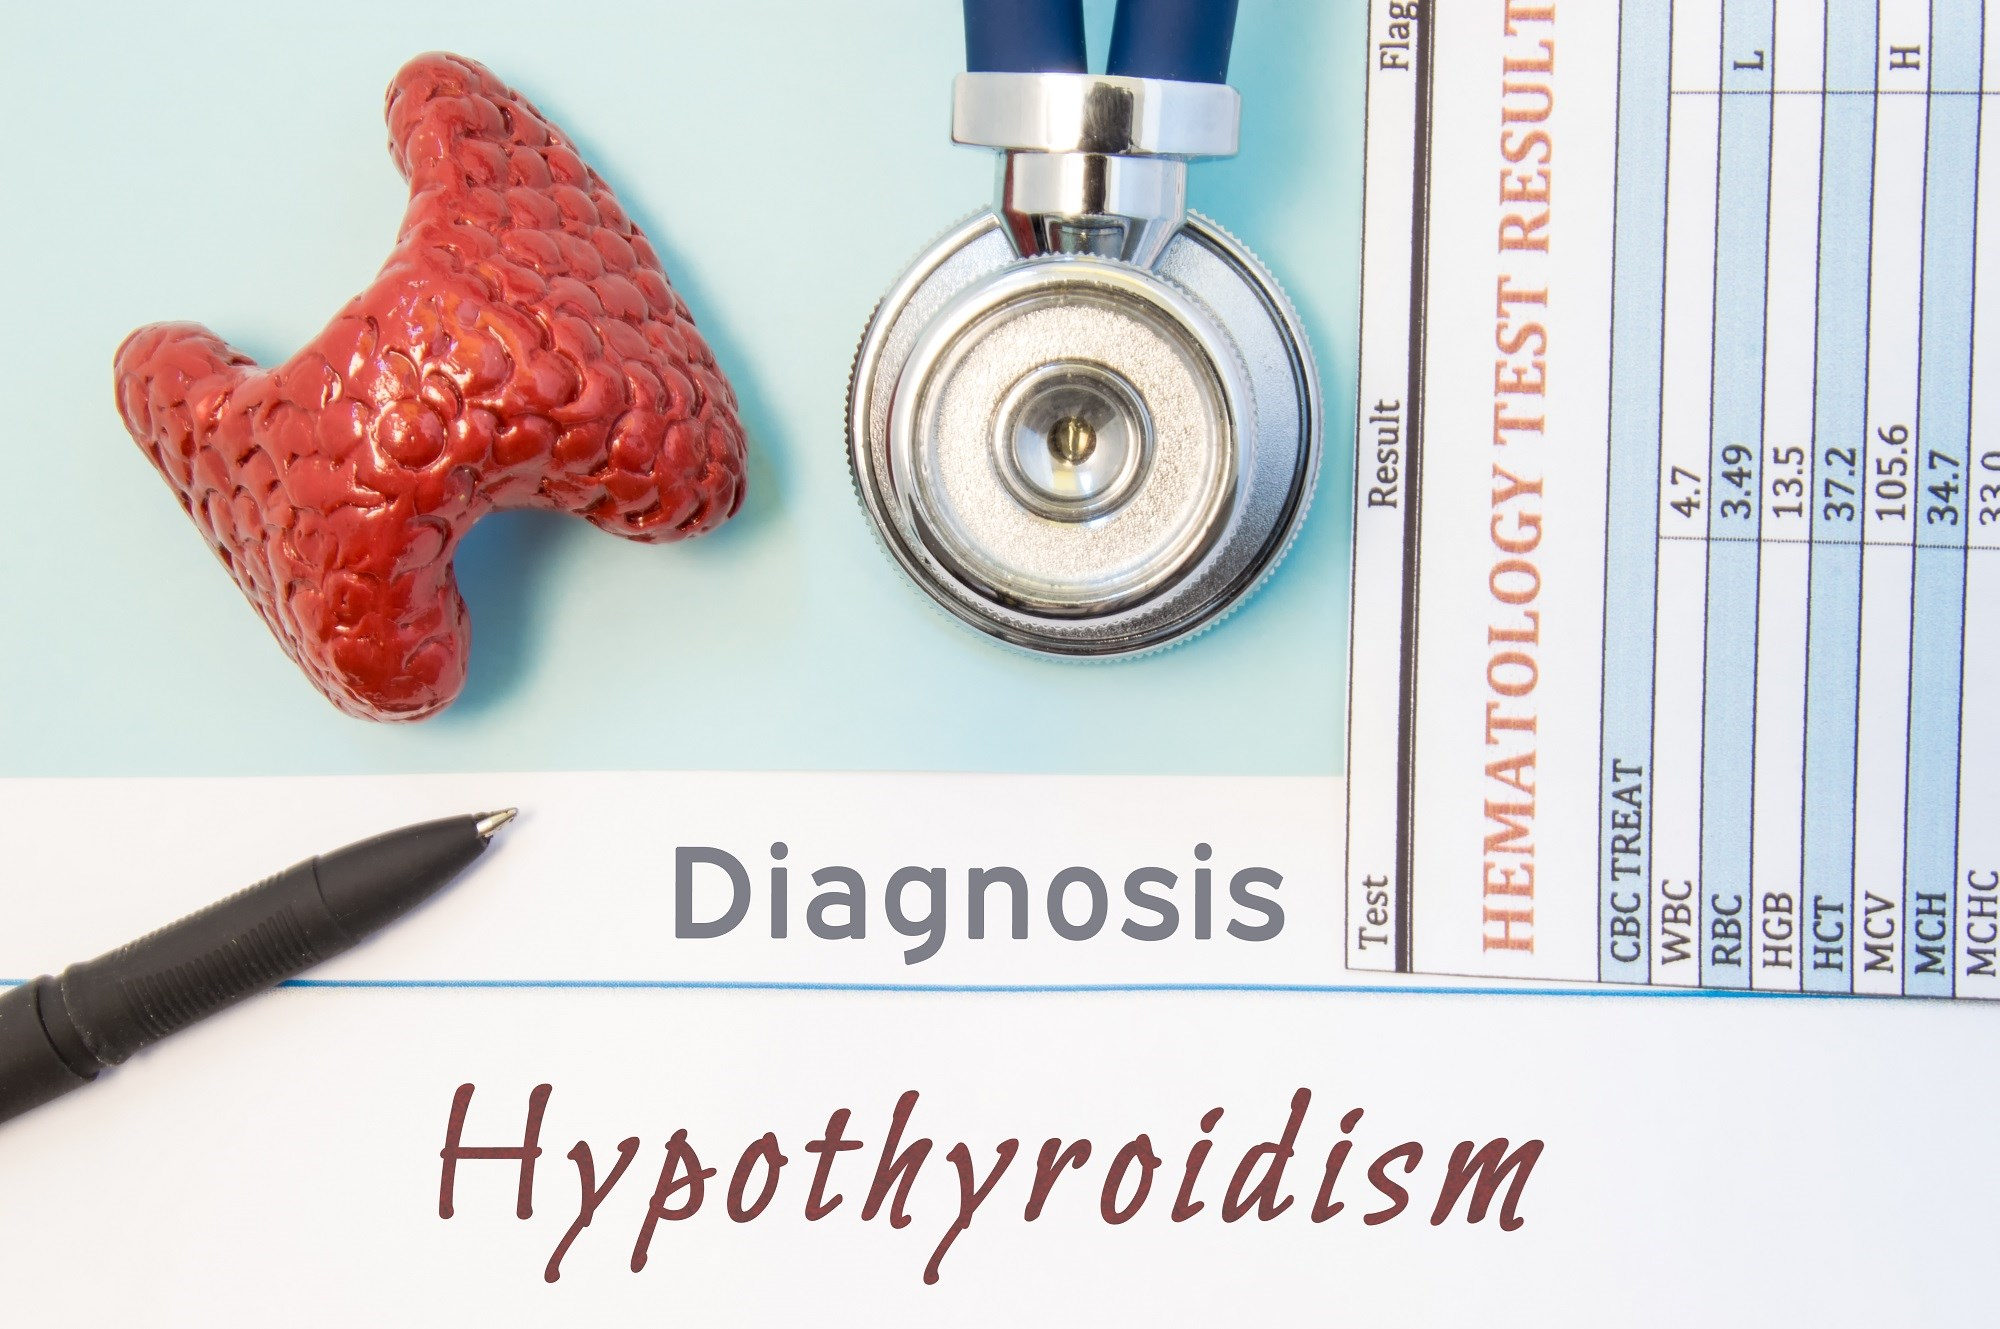 Most cases of permanent congenital hypothyroidism result from thyroid dysgenesis (agenesis or ectopic) or dyshormonogenesis; however, in approximately 5% to 15% of cases, the disease is transient.